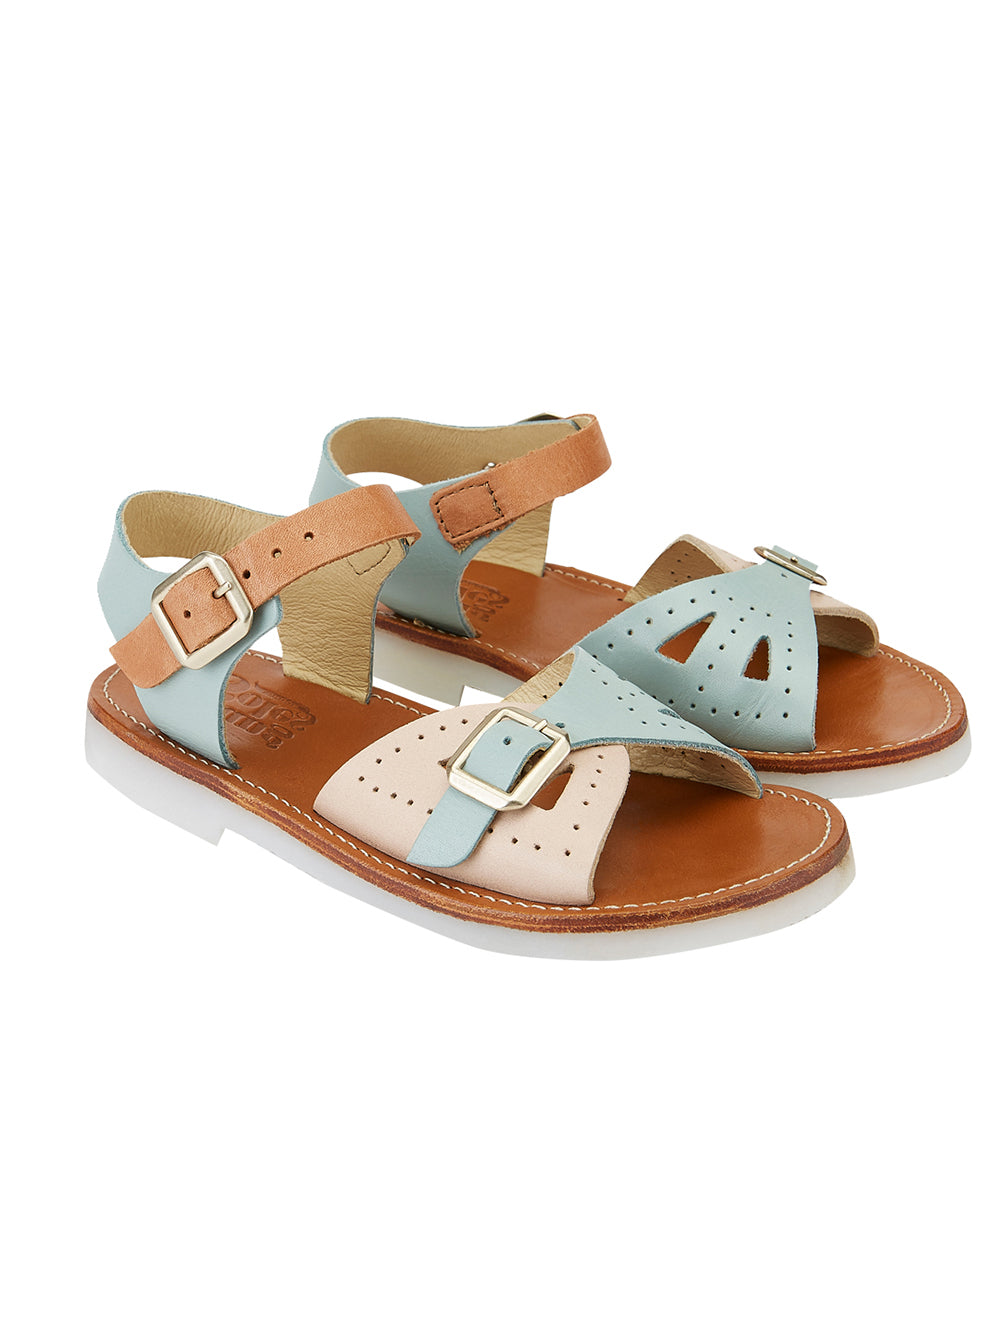 Pearl Pale Sandals